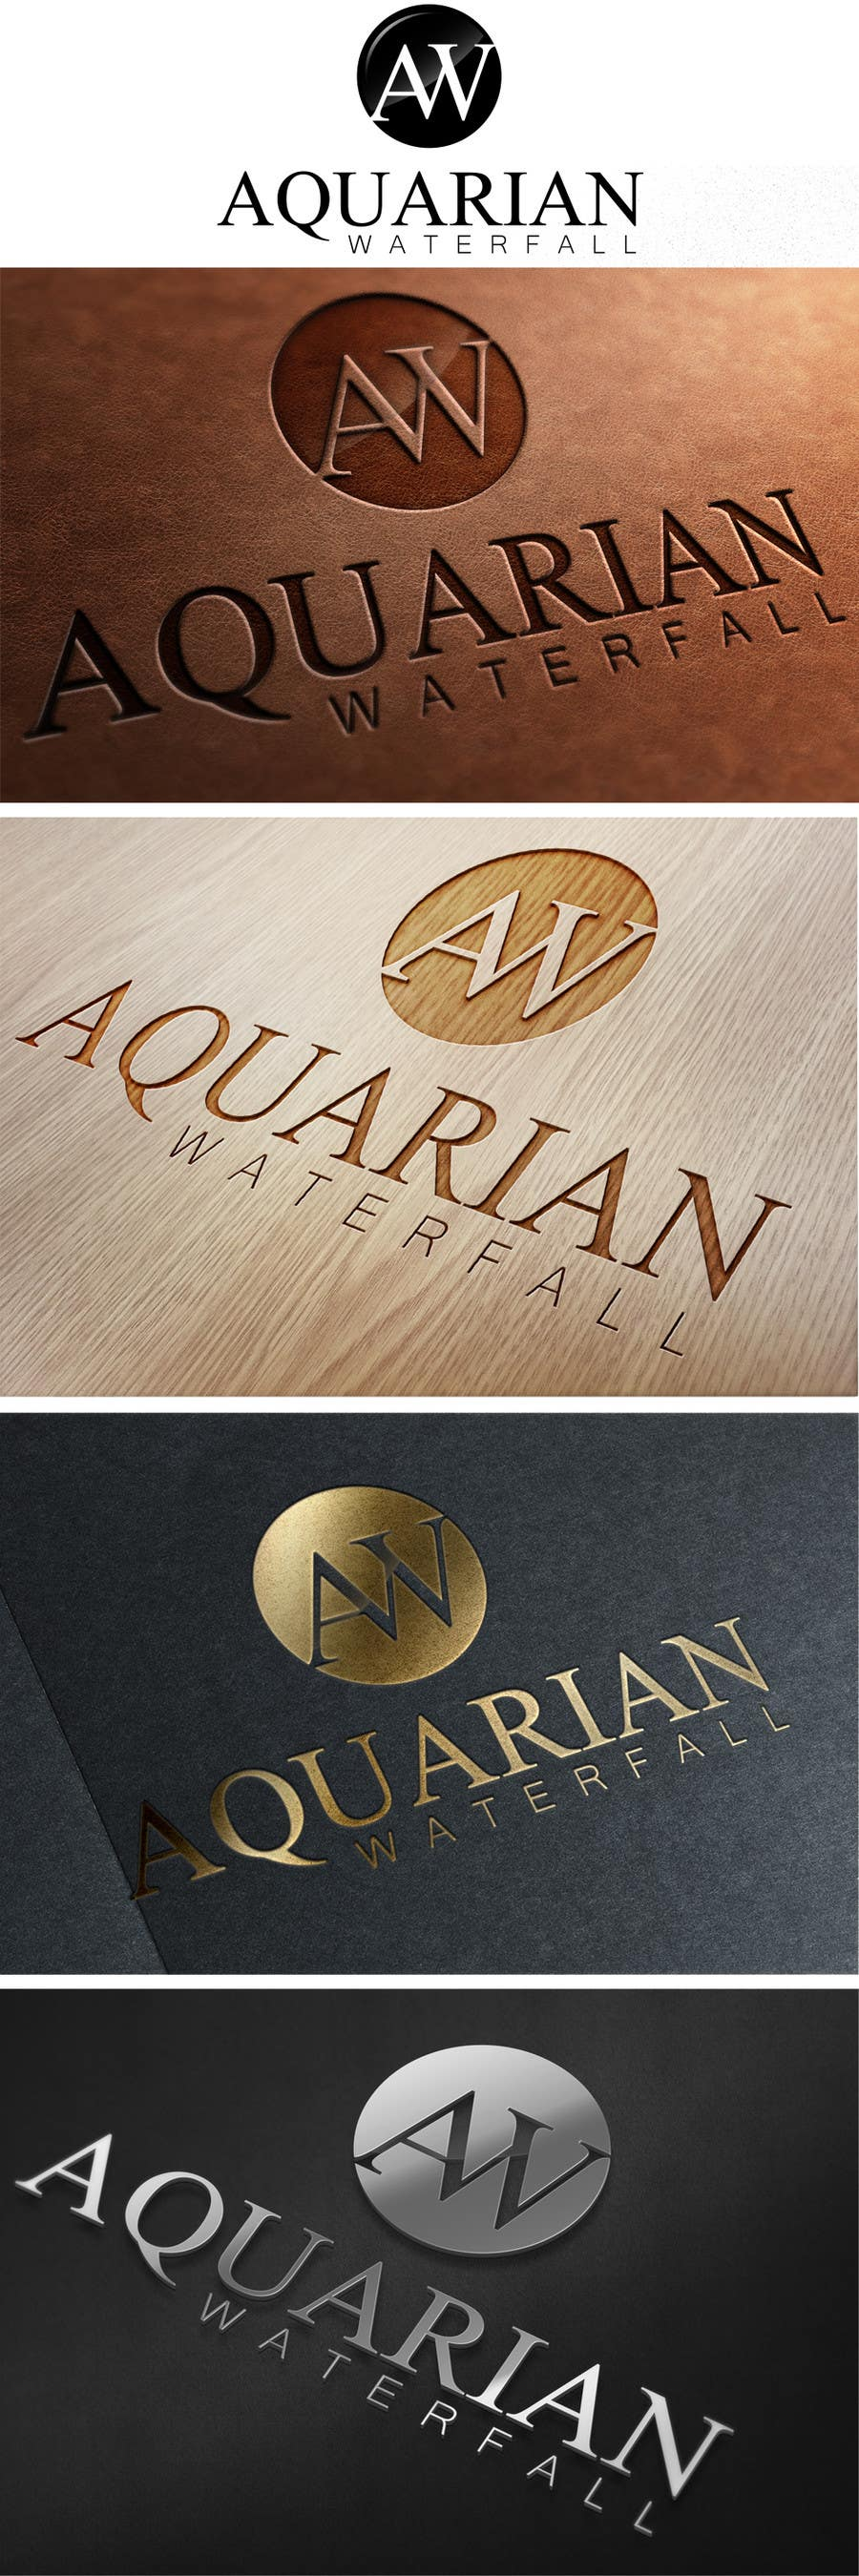 Proposition n°123 du concours Design a Logo for Aquarian Waterfall